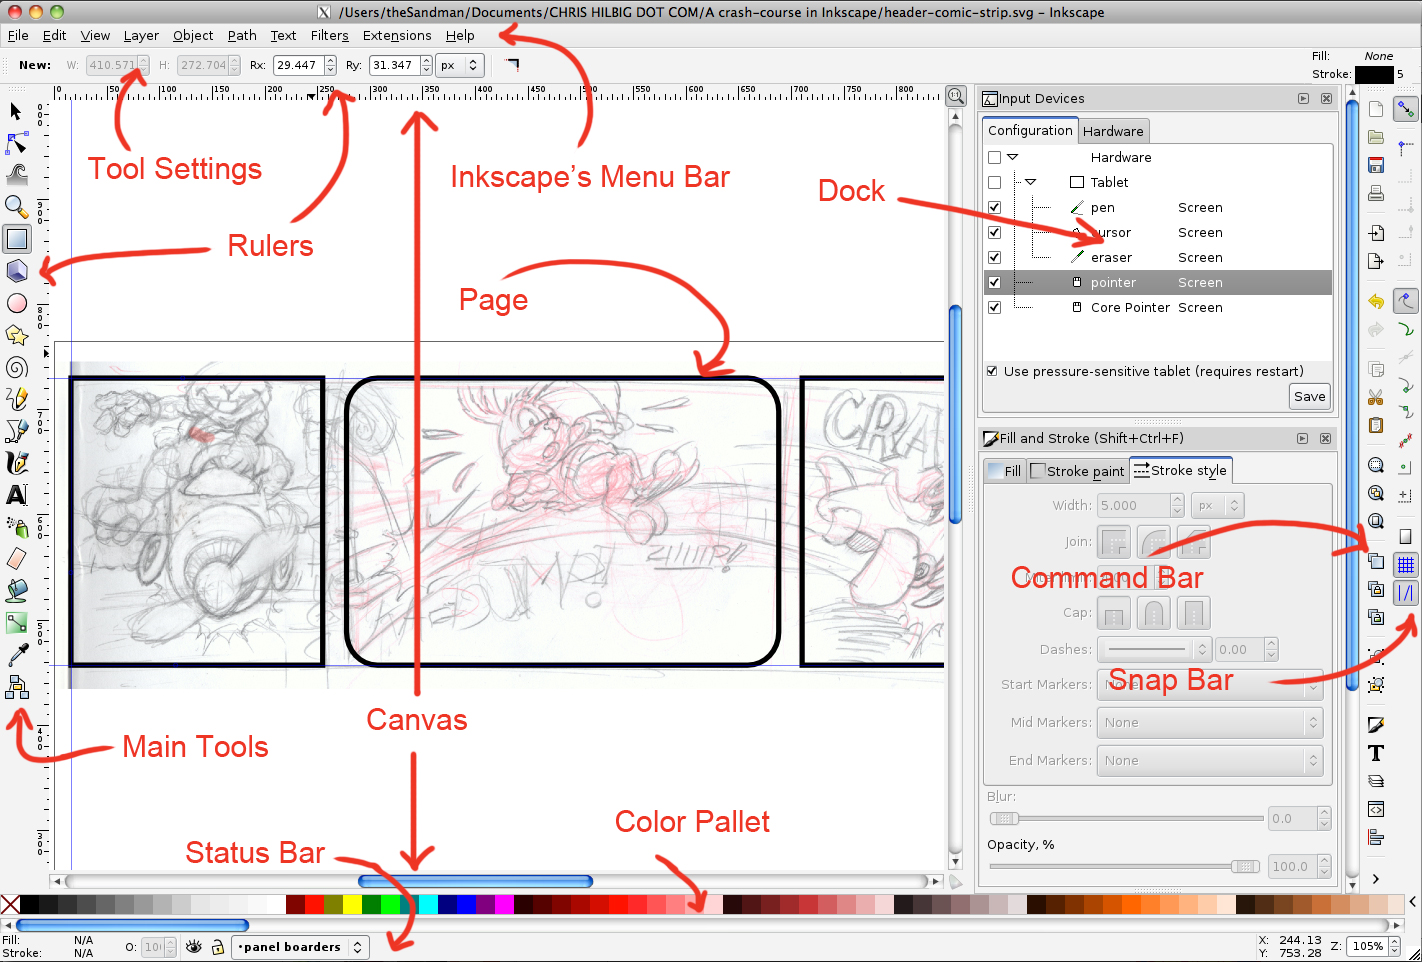 A crash course in inkscape chris hilbig beta edition ccuart Image collections